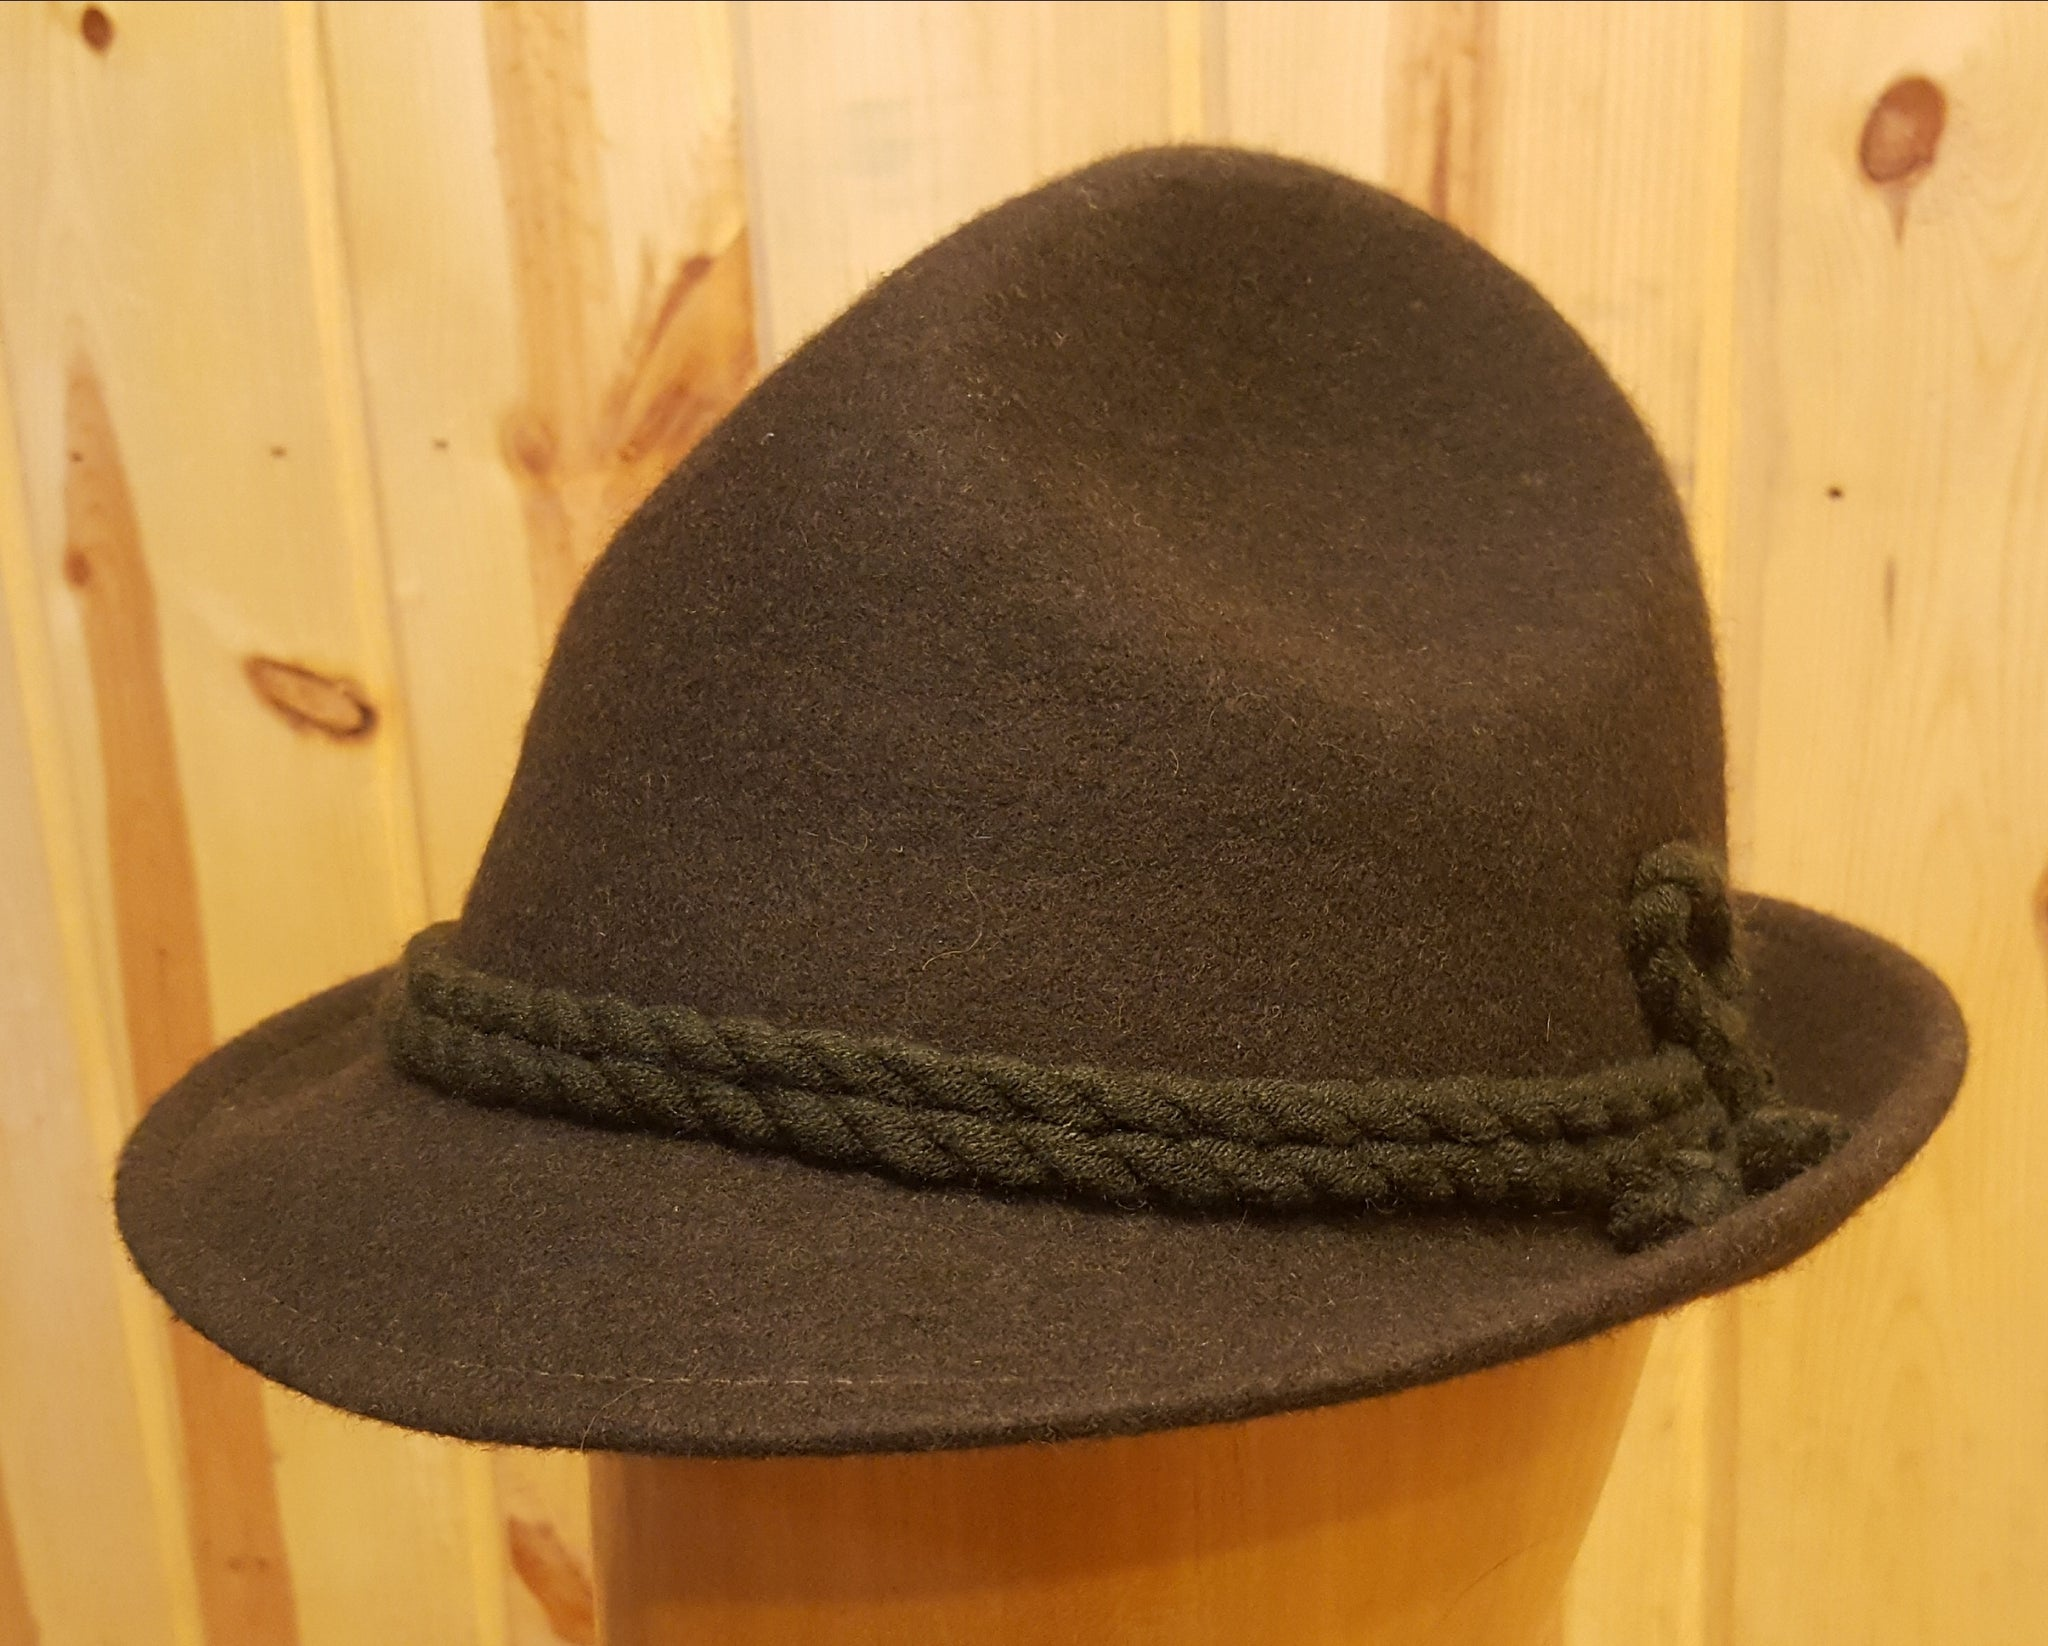 e367b0dcd Tyrolean Alpine Hat (Traditional Hunting Hat) – Alpen Schatz